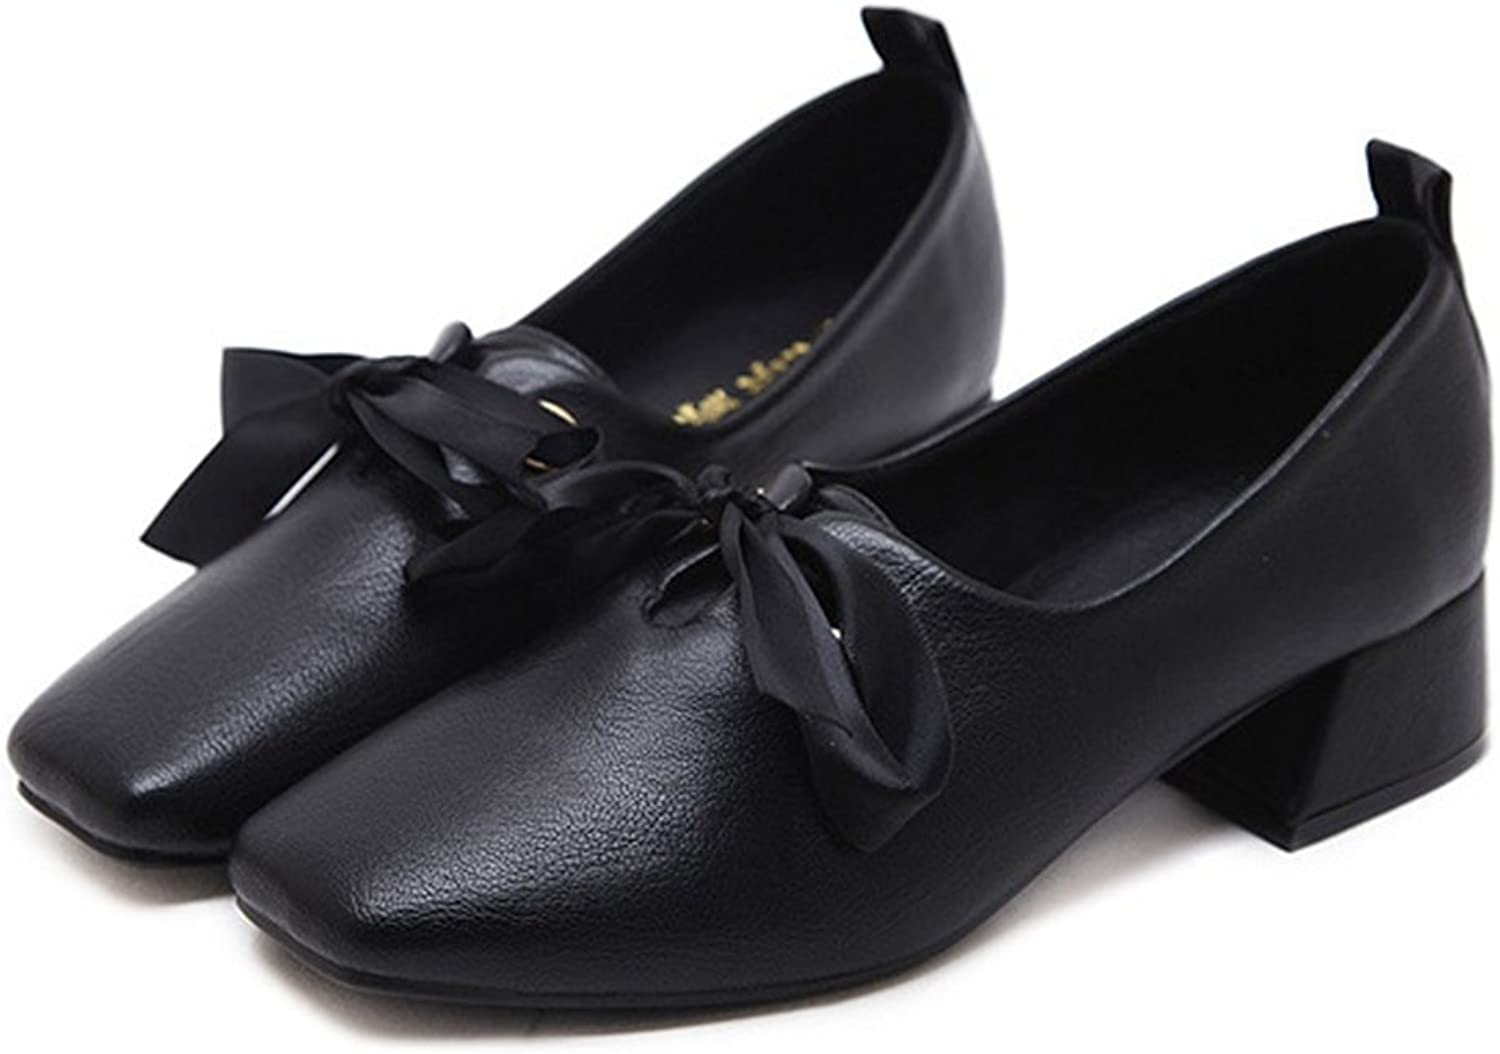 T-JULY Women Bowknot Square Toe Sweet Fashion Loafers Mid-Heeled Classic Penny Comfort shoes